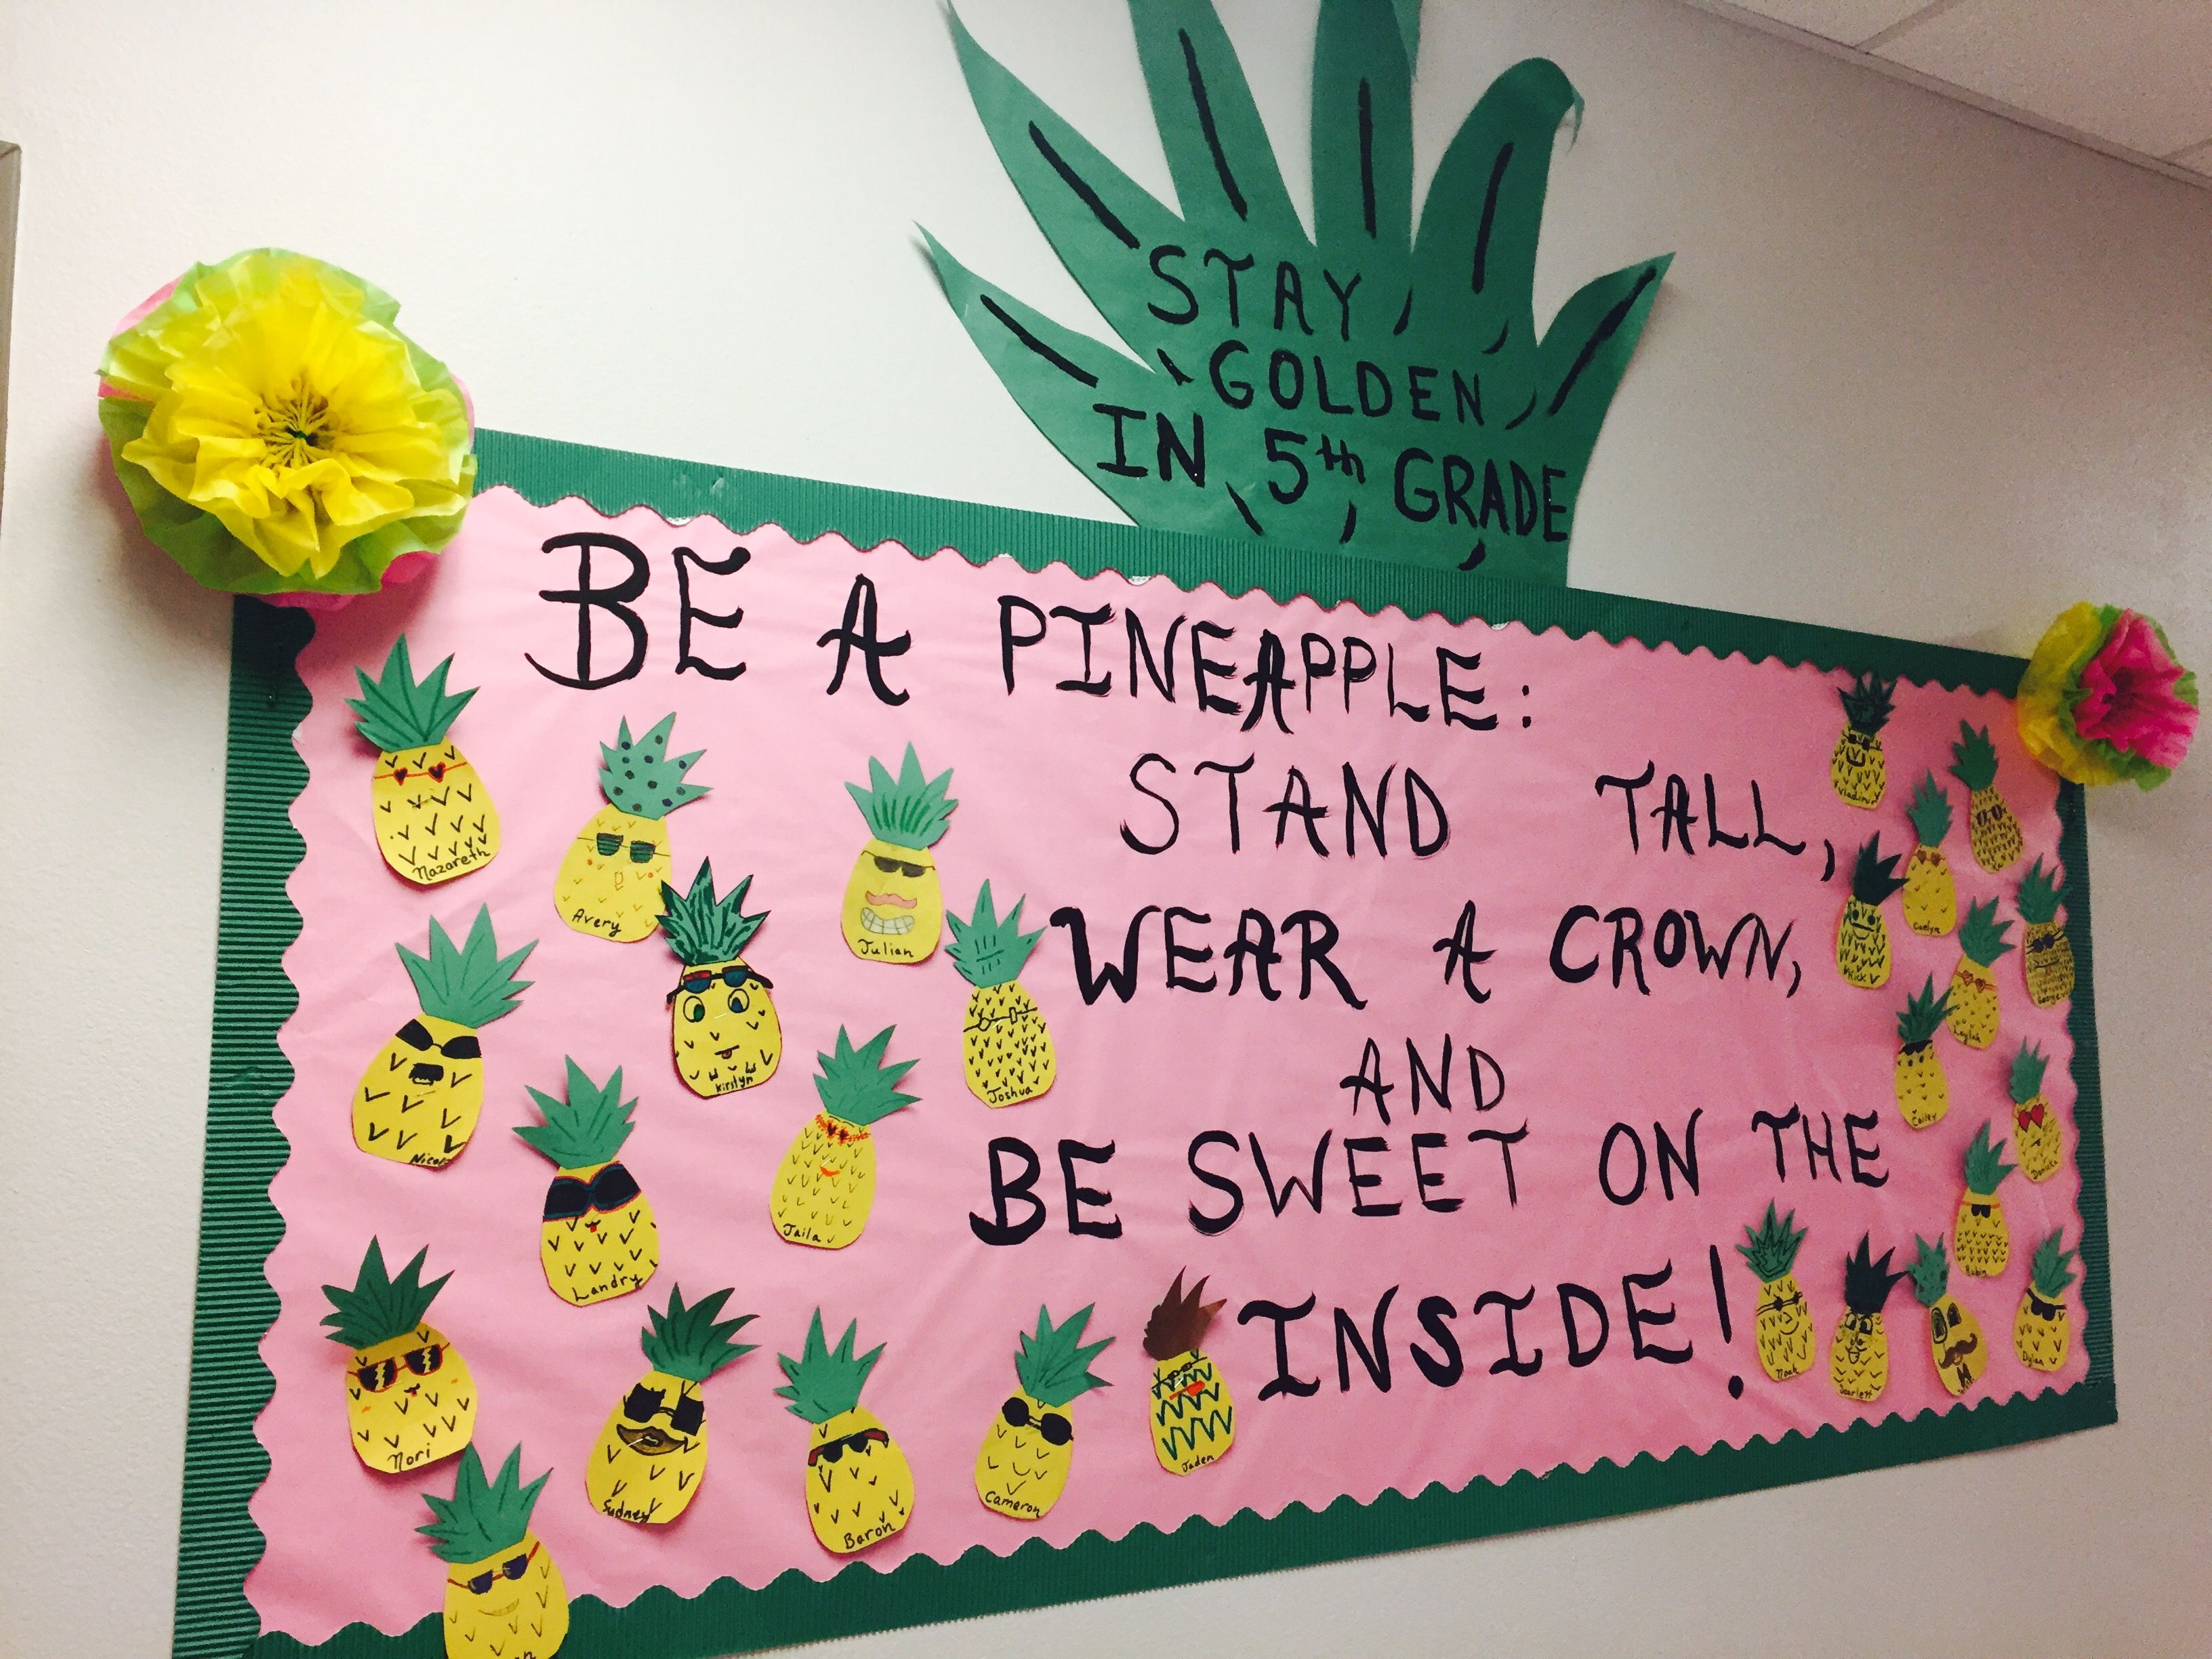 Go green vegetable bulletin board idea myclassroomideas com - Be A Pineapple Stand Tall Wear A Crown Ane Be Sweet On The